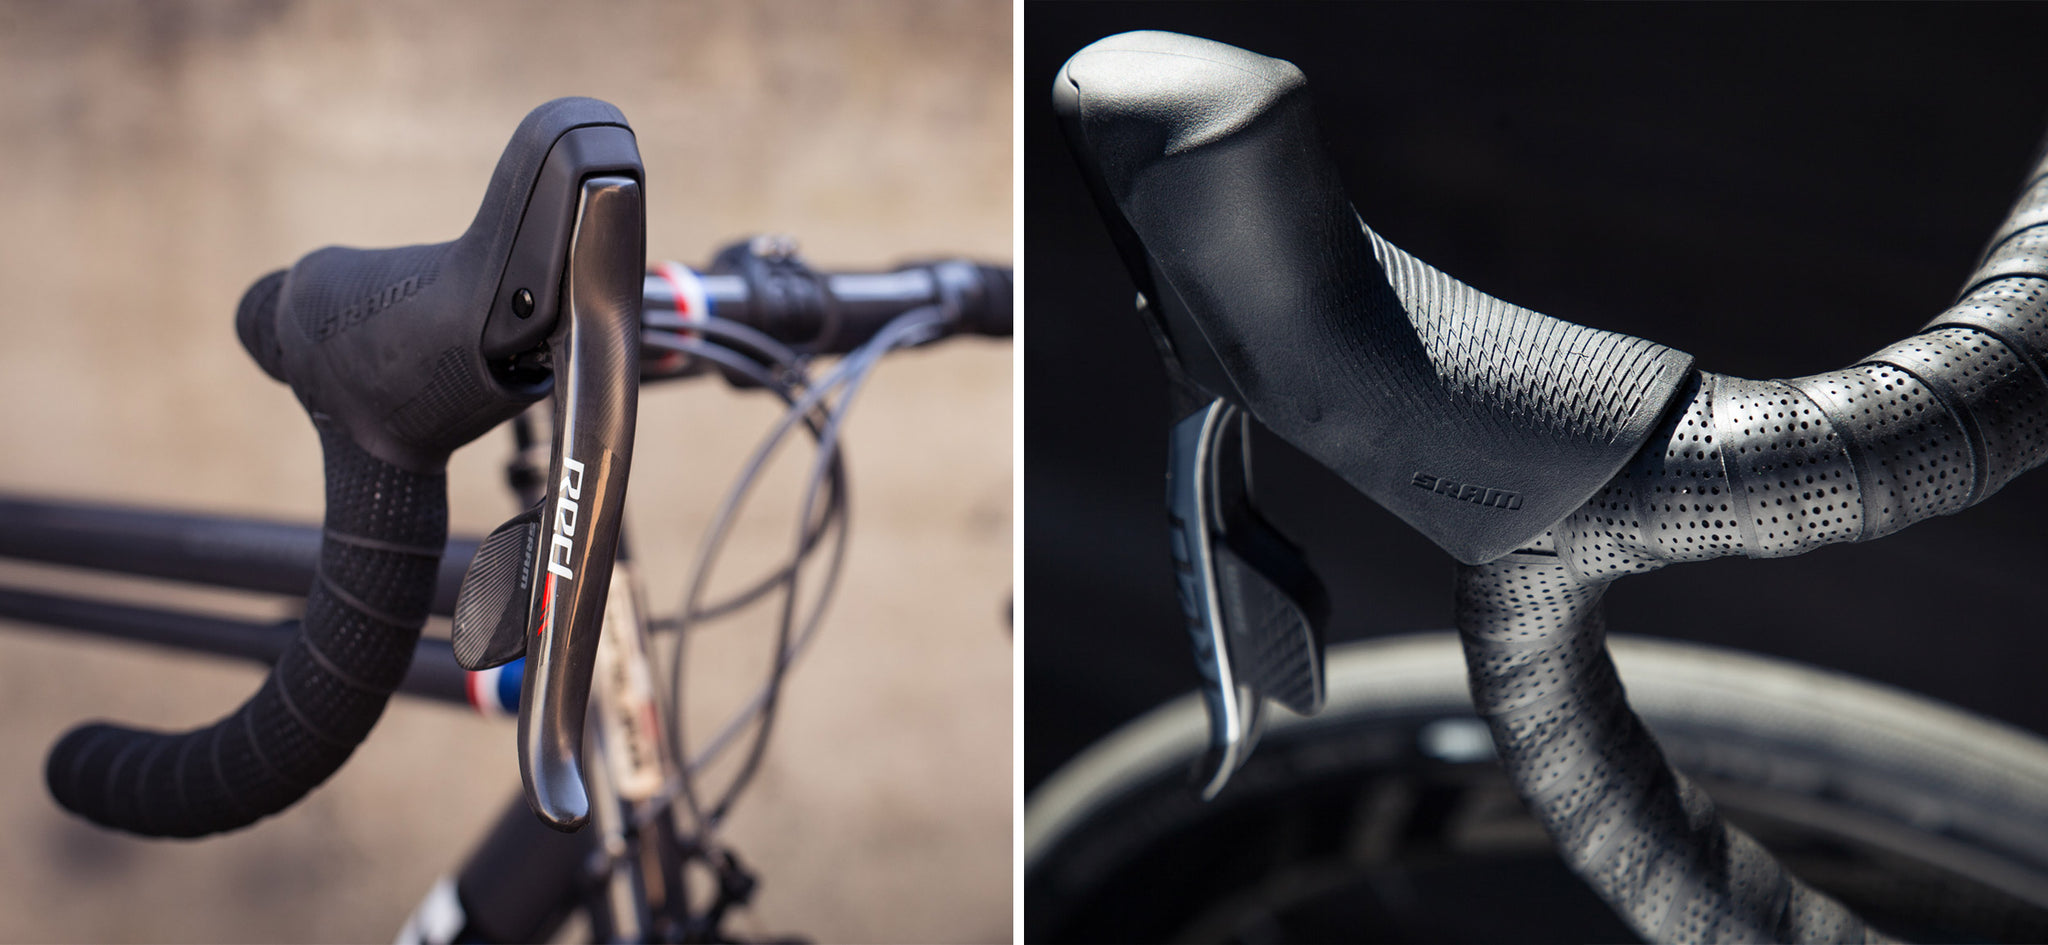 mechanical vs electronic sram levers